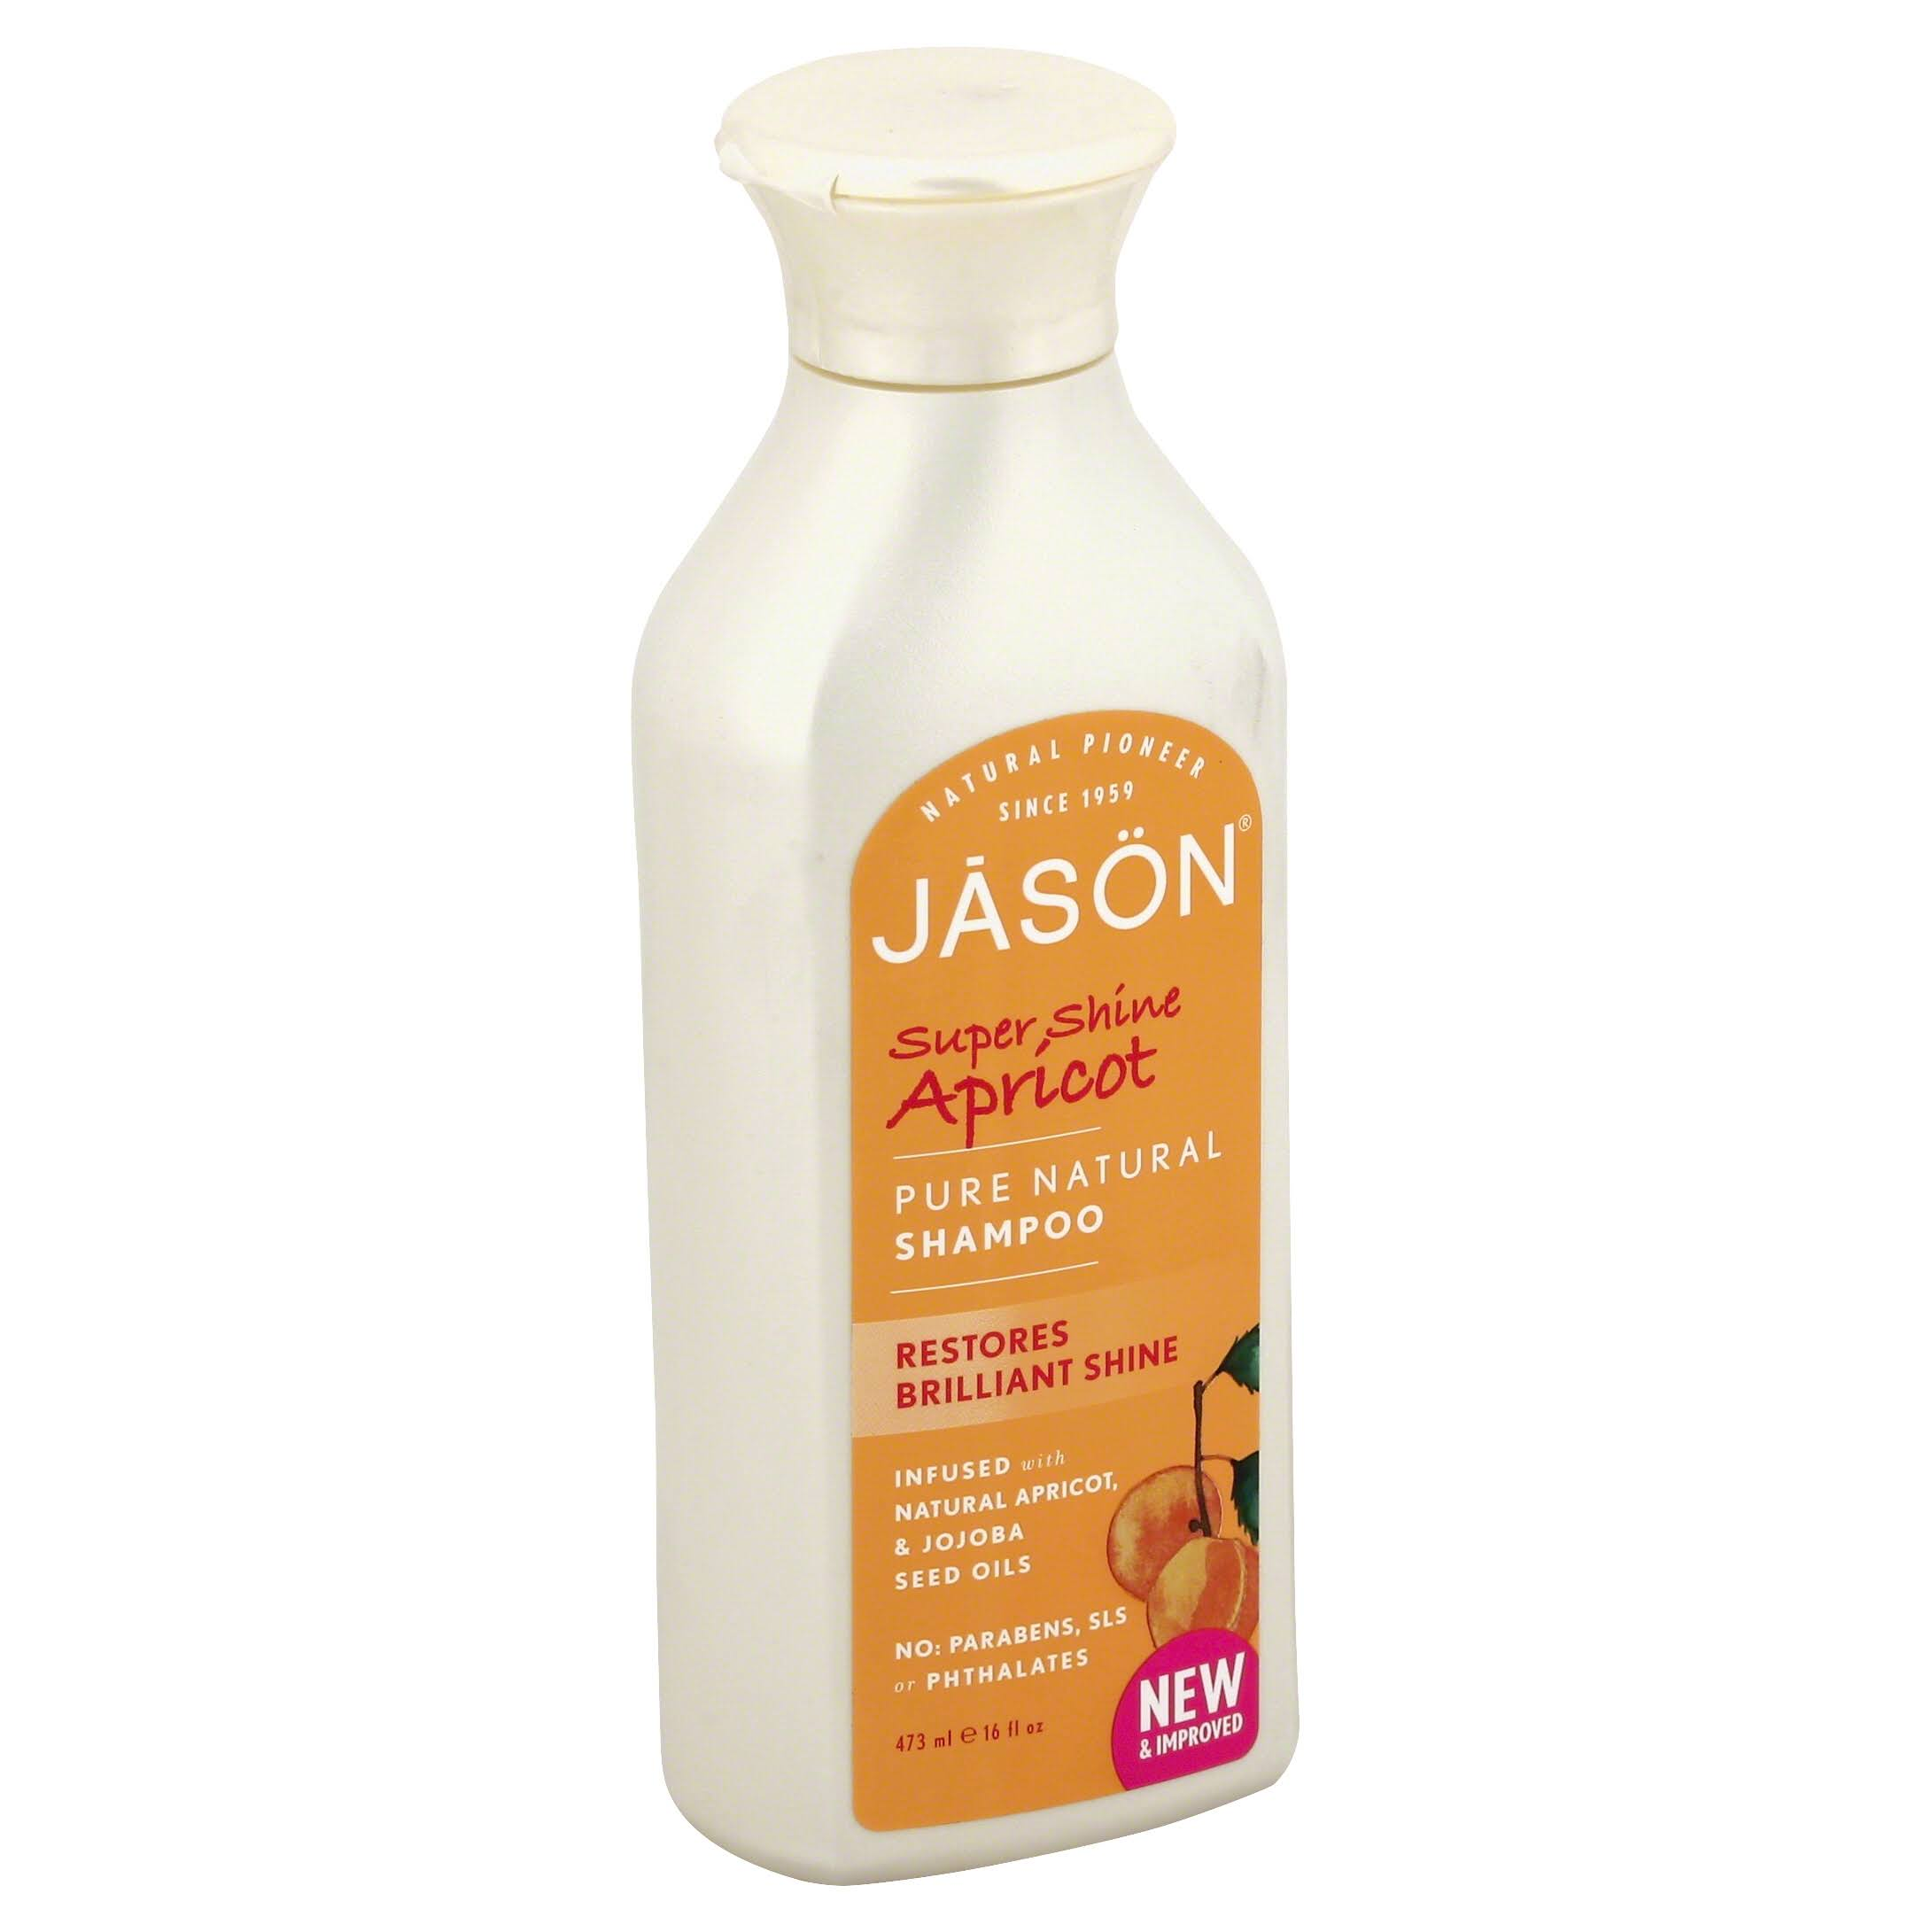 Jason Super Shine Natural Shampoo Apricot